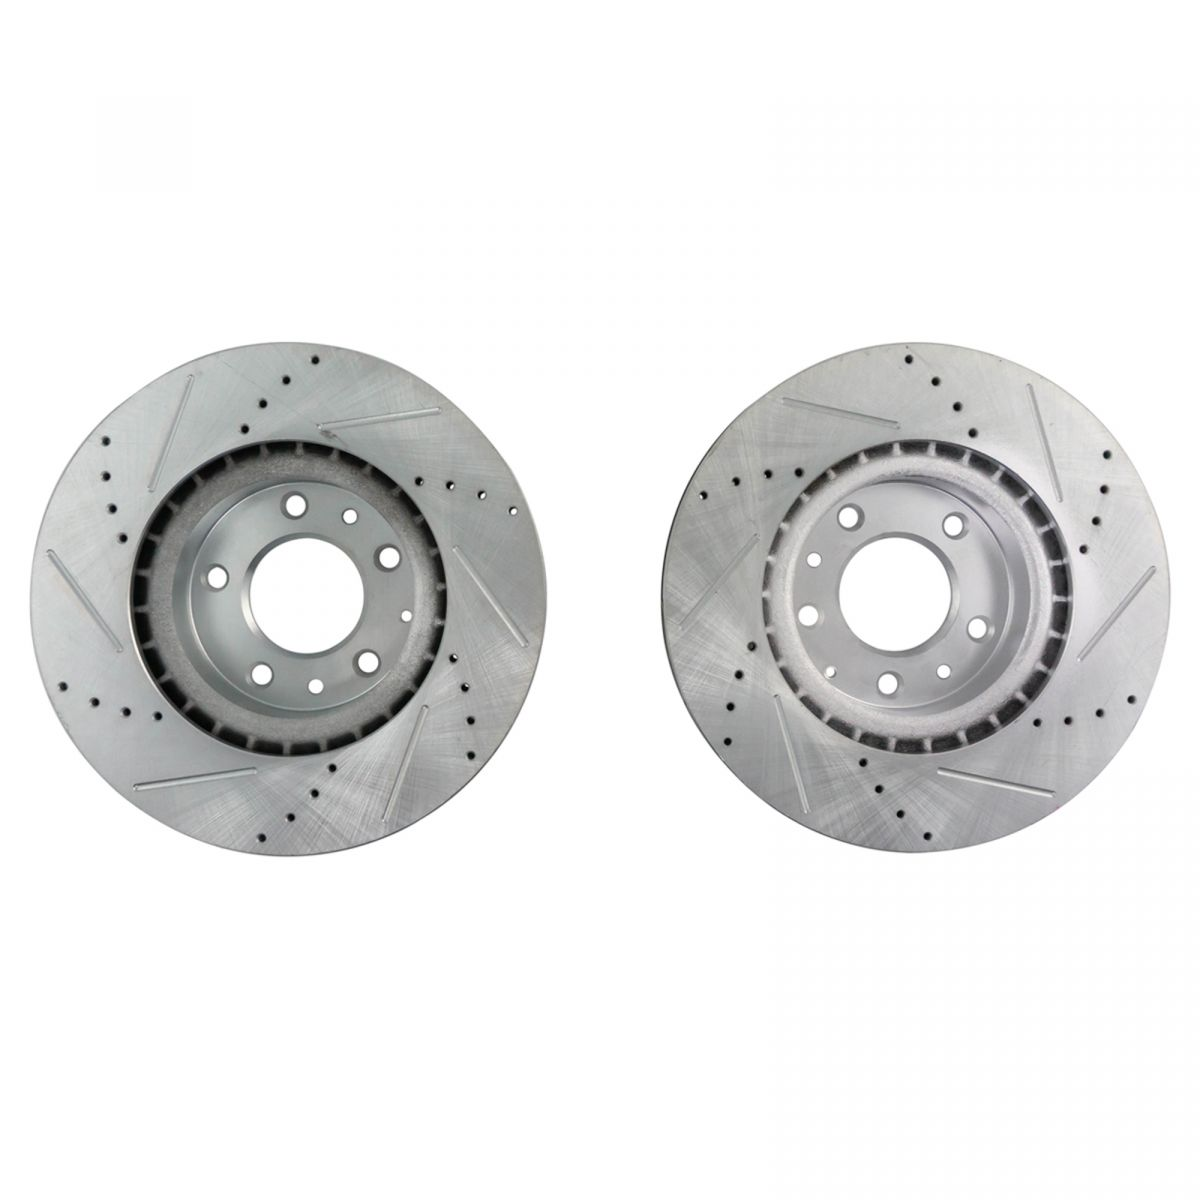 Front Disc Brake Rotor Driver /& Passenger Side LH RH Pair for Ford Mustang New